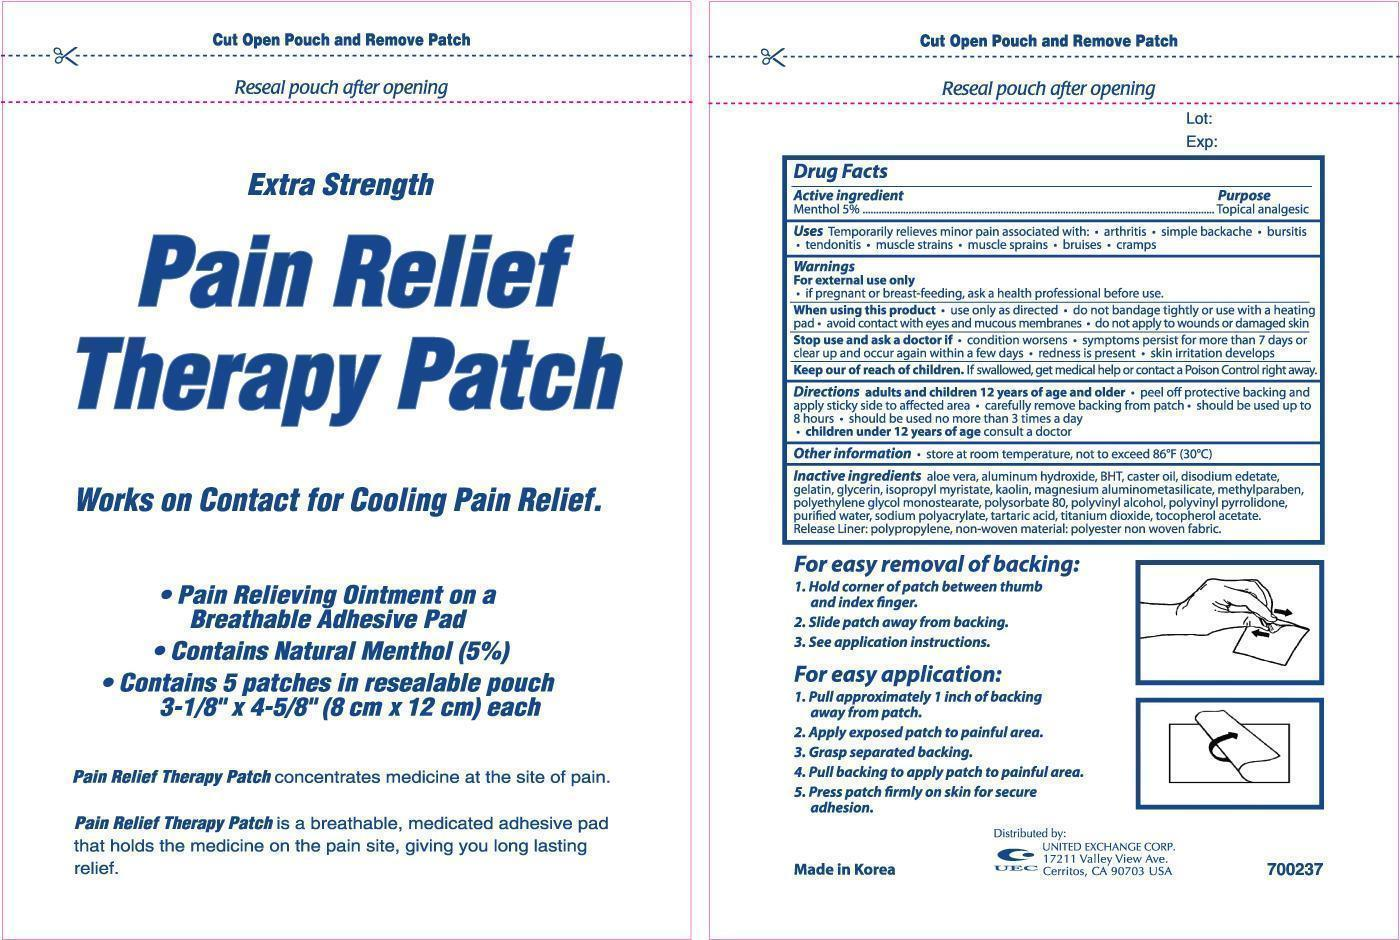 Extra Strength Pain Relief Therapy (Menthol) Patch [United Exchange Corp]